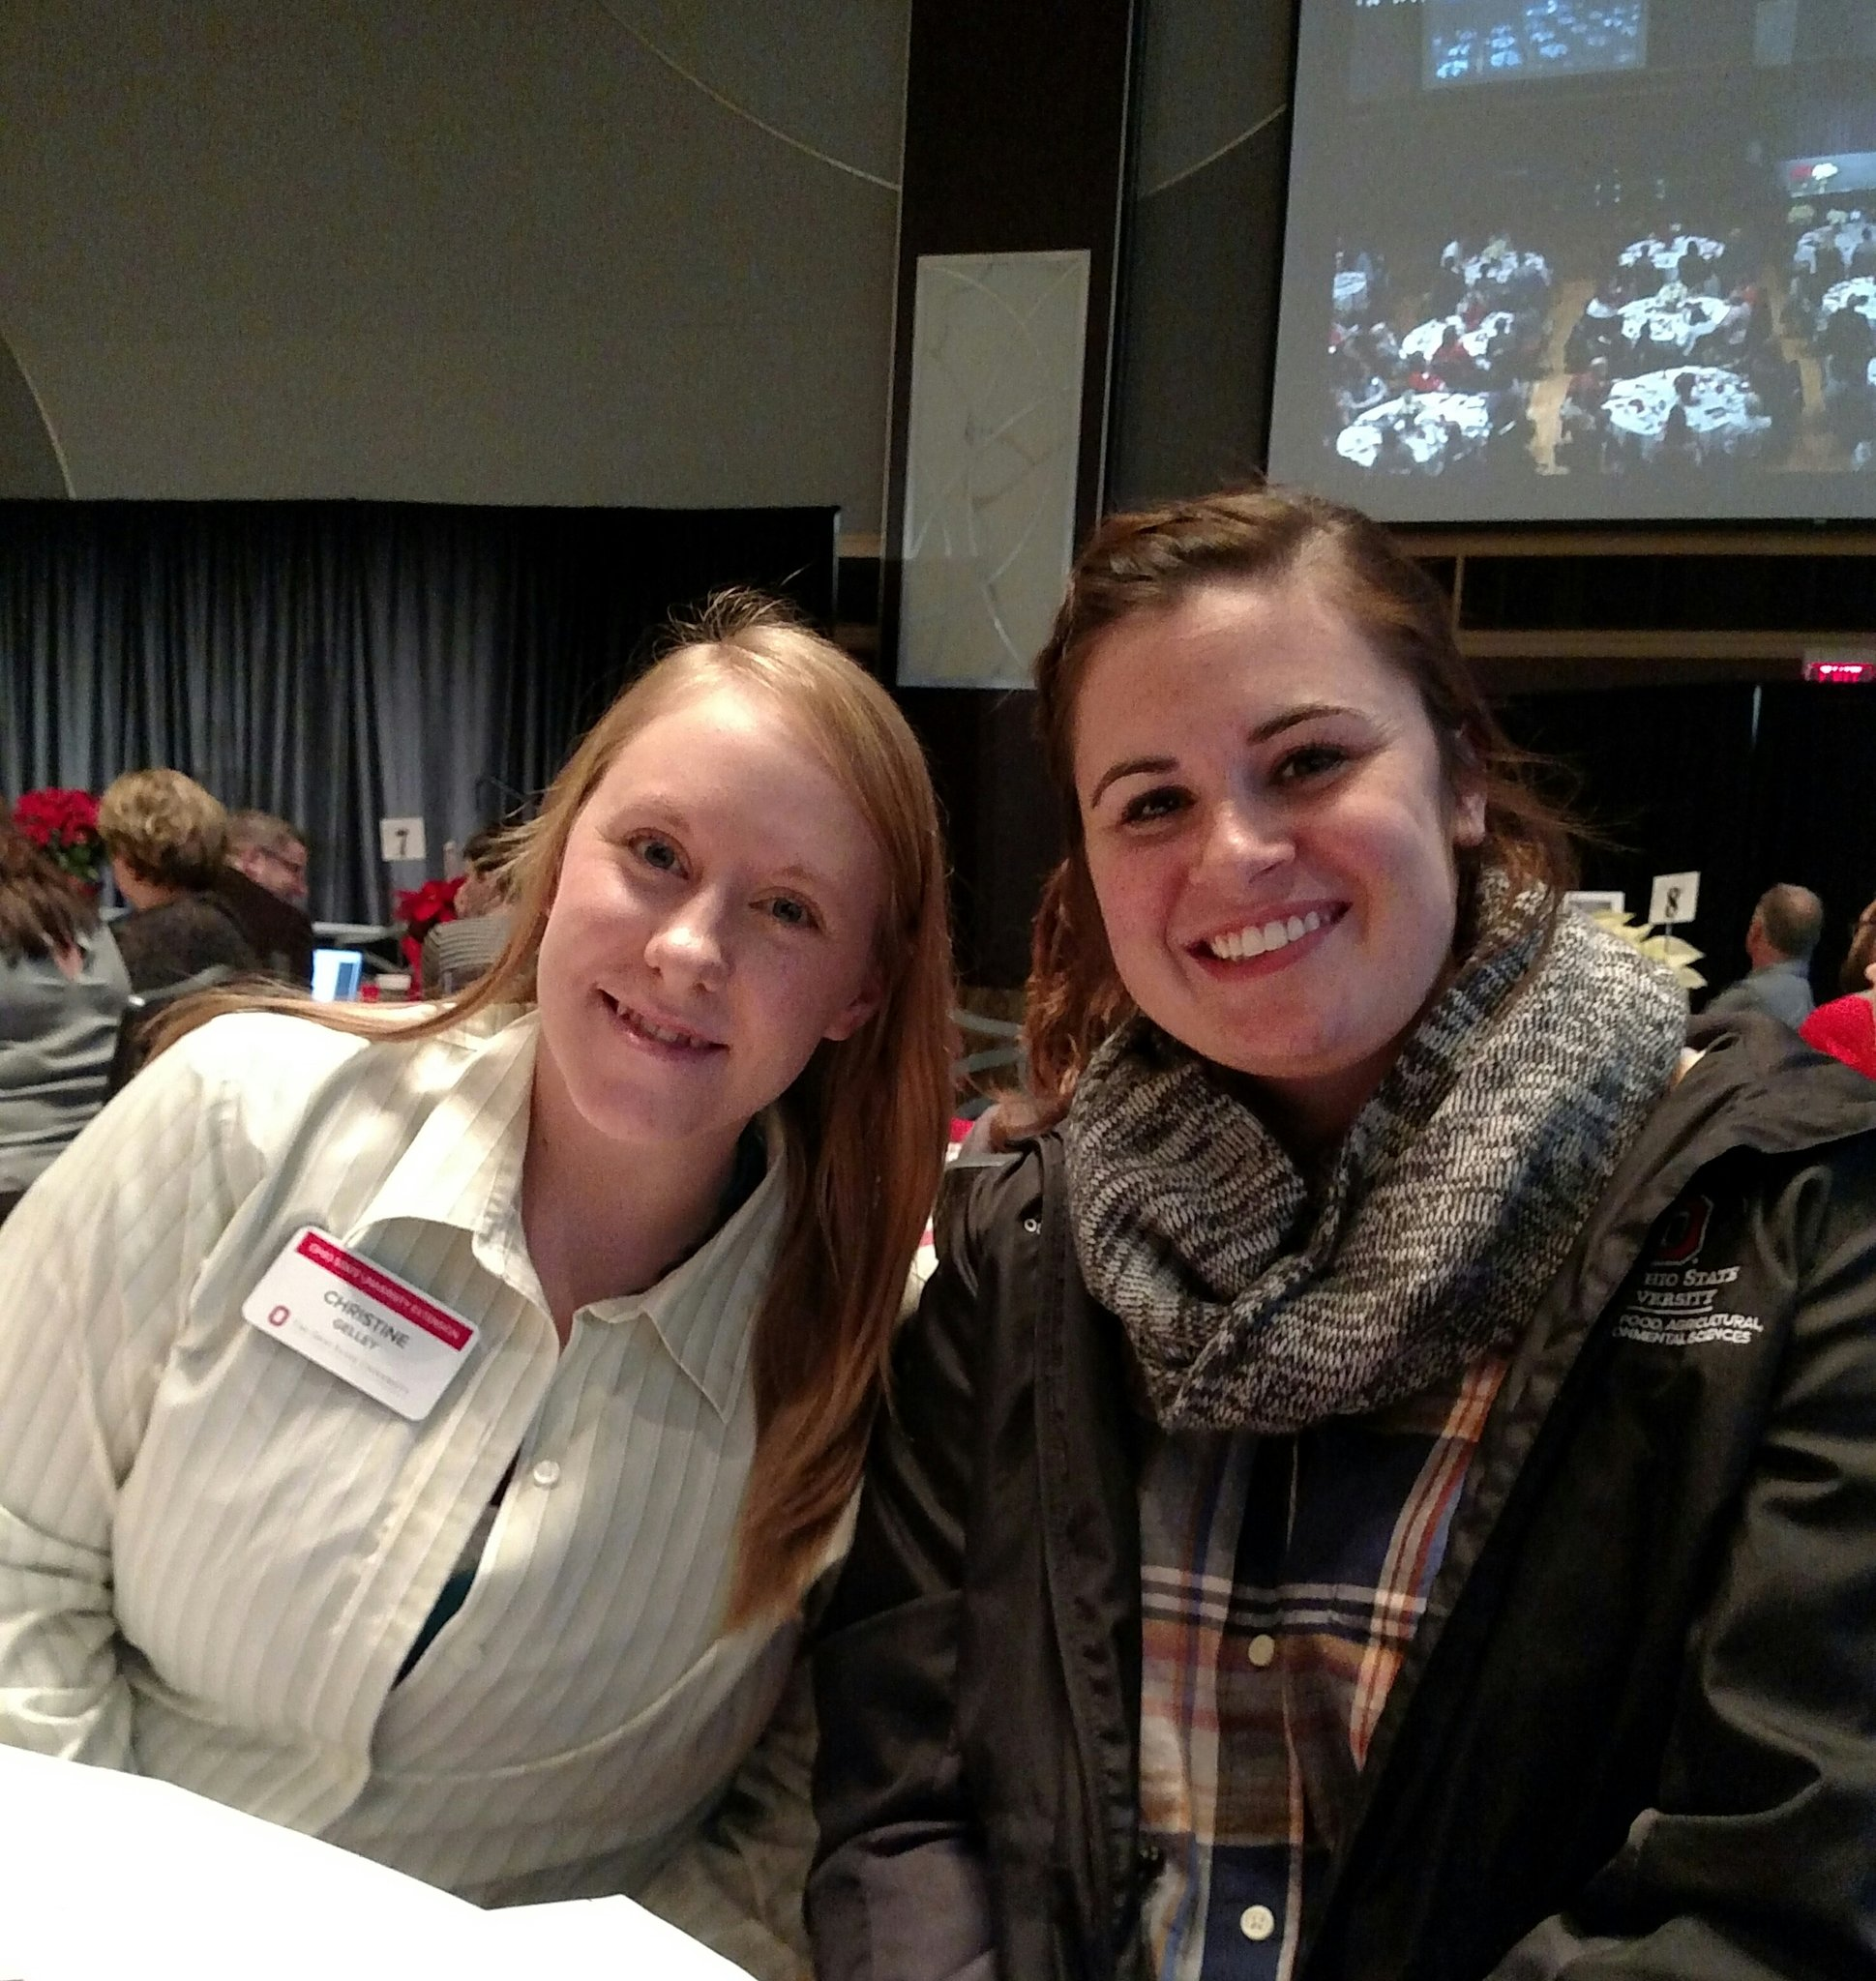 Extension Annual Conference first-timers.  Christine and @SamiJoSchott .  #osue2016 https://t.co/dGZUa2sVjs